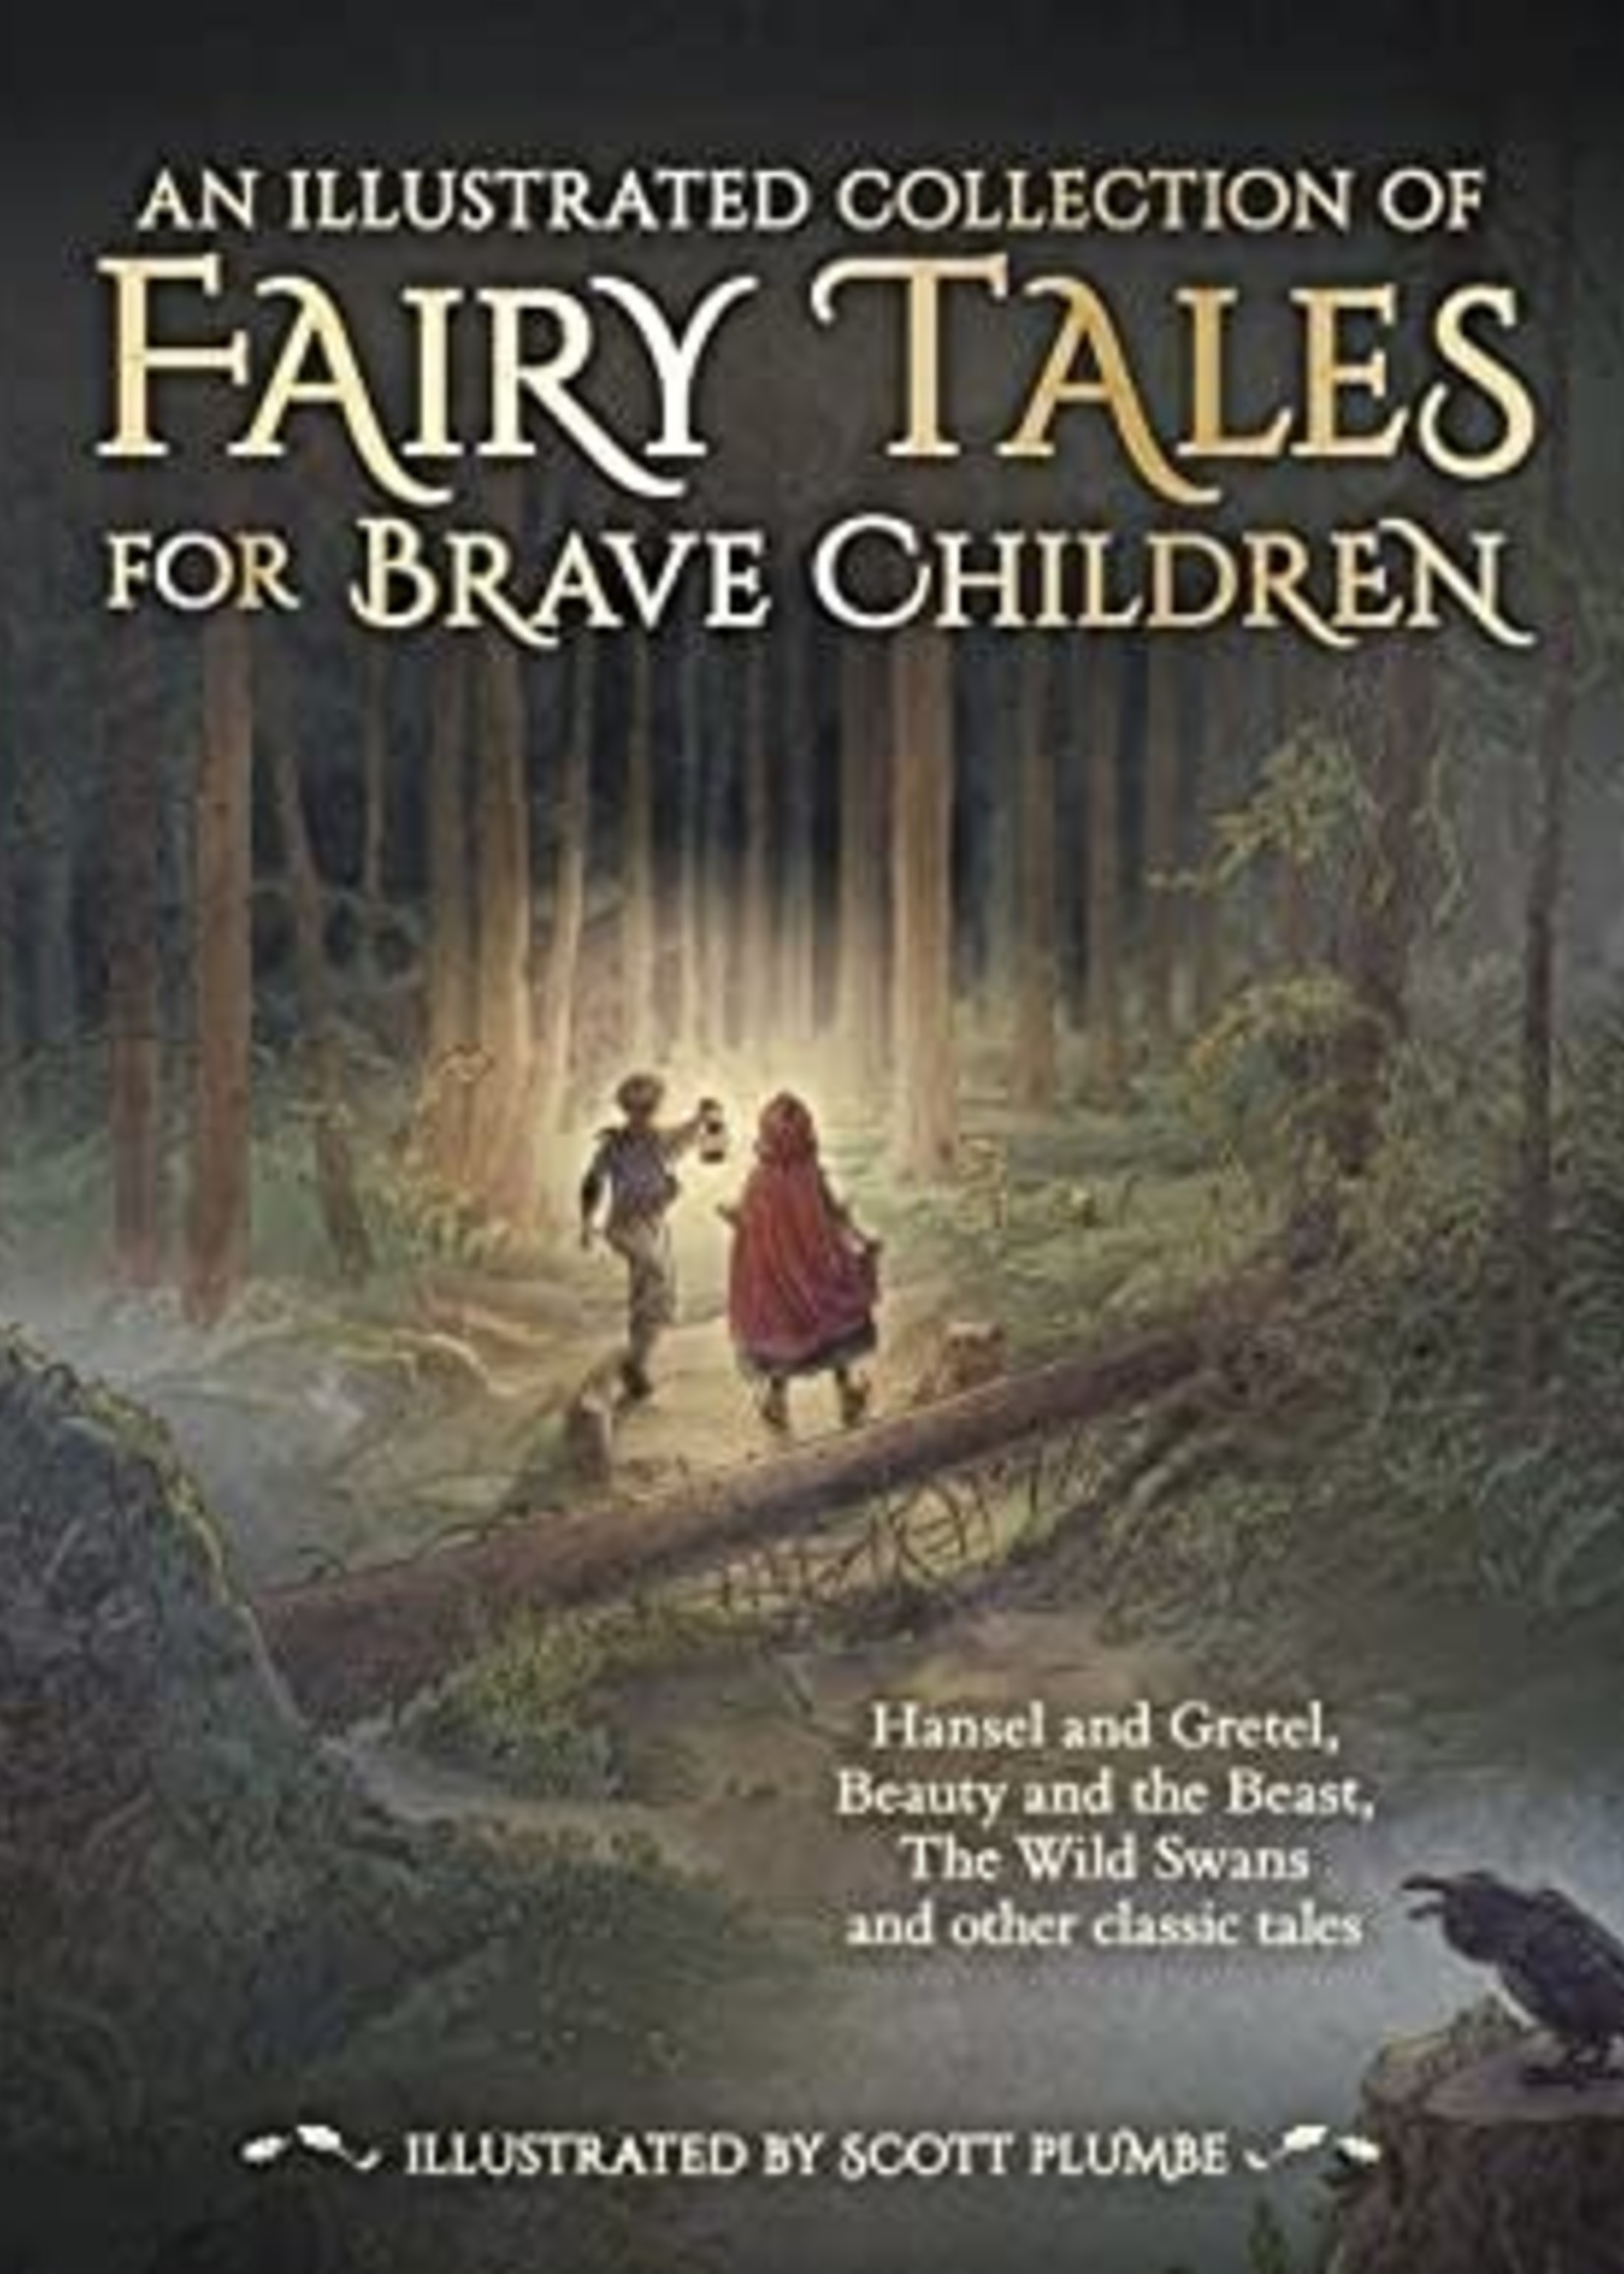 An Illustrated Collection of Fairy Tales for Brave Children by Hans Christian Andersen,  Wilhelm Grimm,  Jacob Grimm,  Scott Plumbe